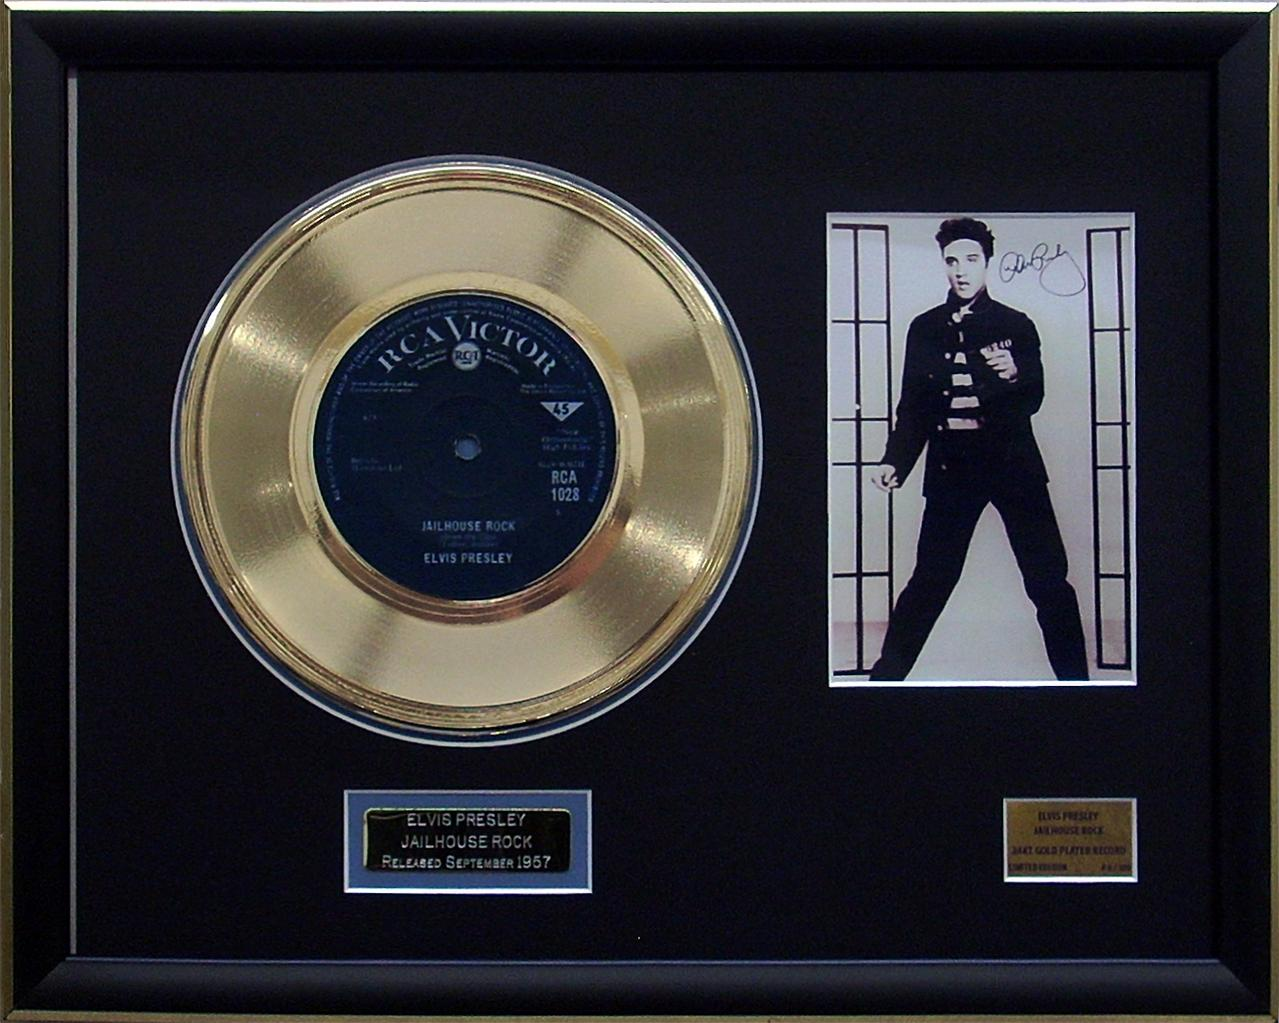 Elvis-Presley-Jail-House-Rock-Limited-Edition-Framed-24KT-Gold-Plated-Record